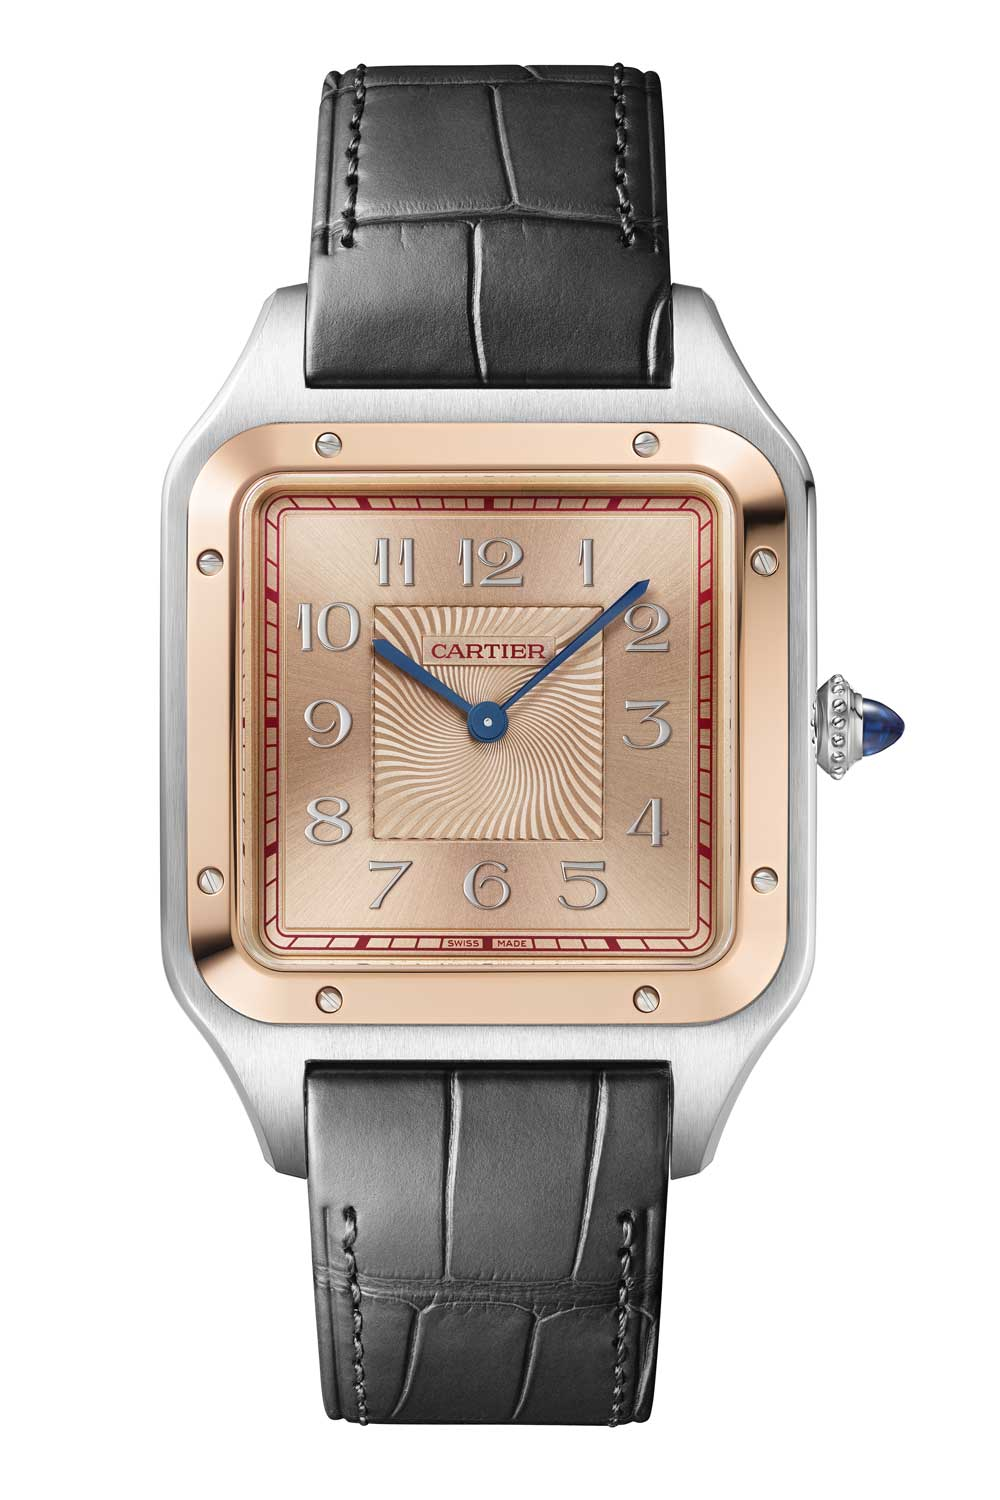 The Santos-Dumont extra-large model in 18k pink gold and steel